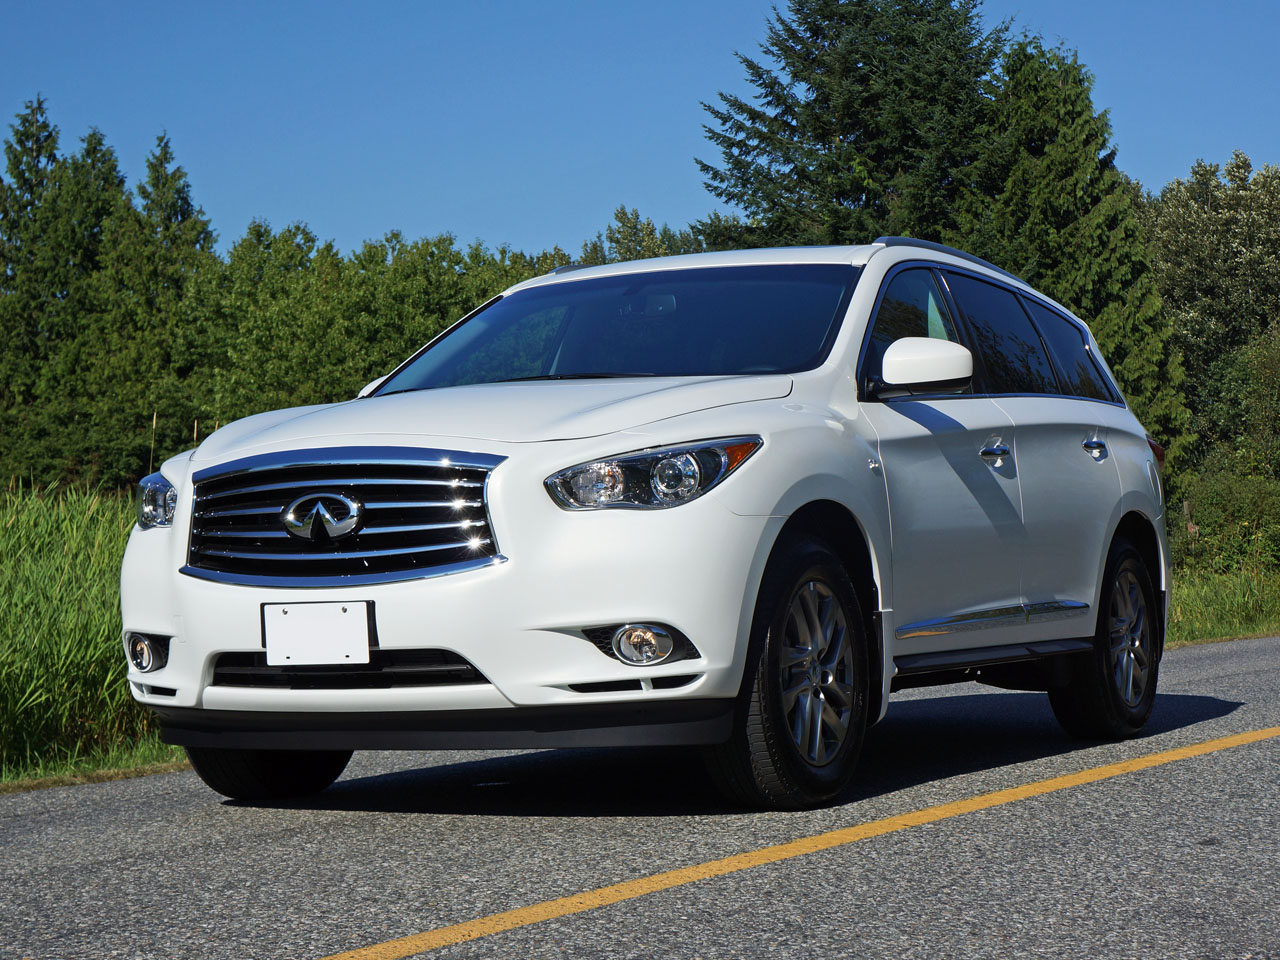 2014 infiniti qx60 awd road test review carcostcanada. Black Bedroom Furniture Sets. Home Design Ideas